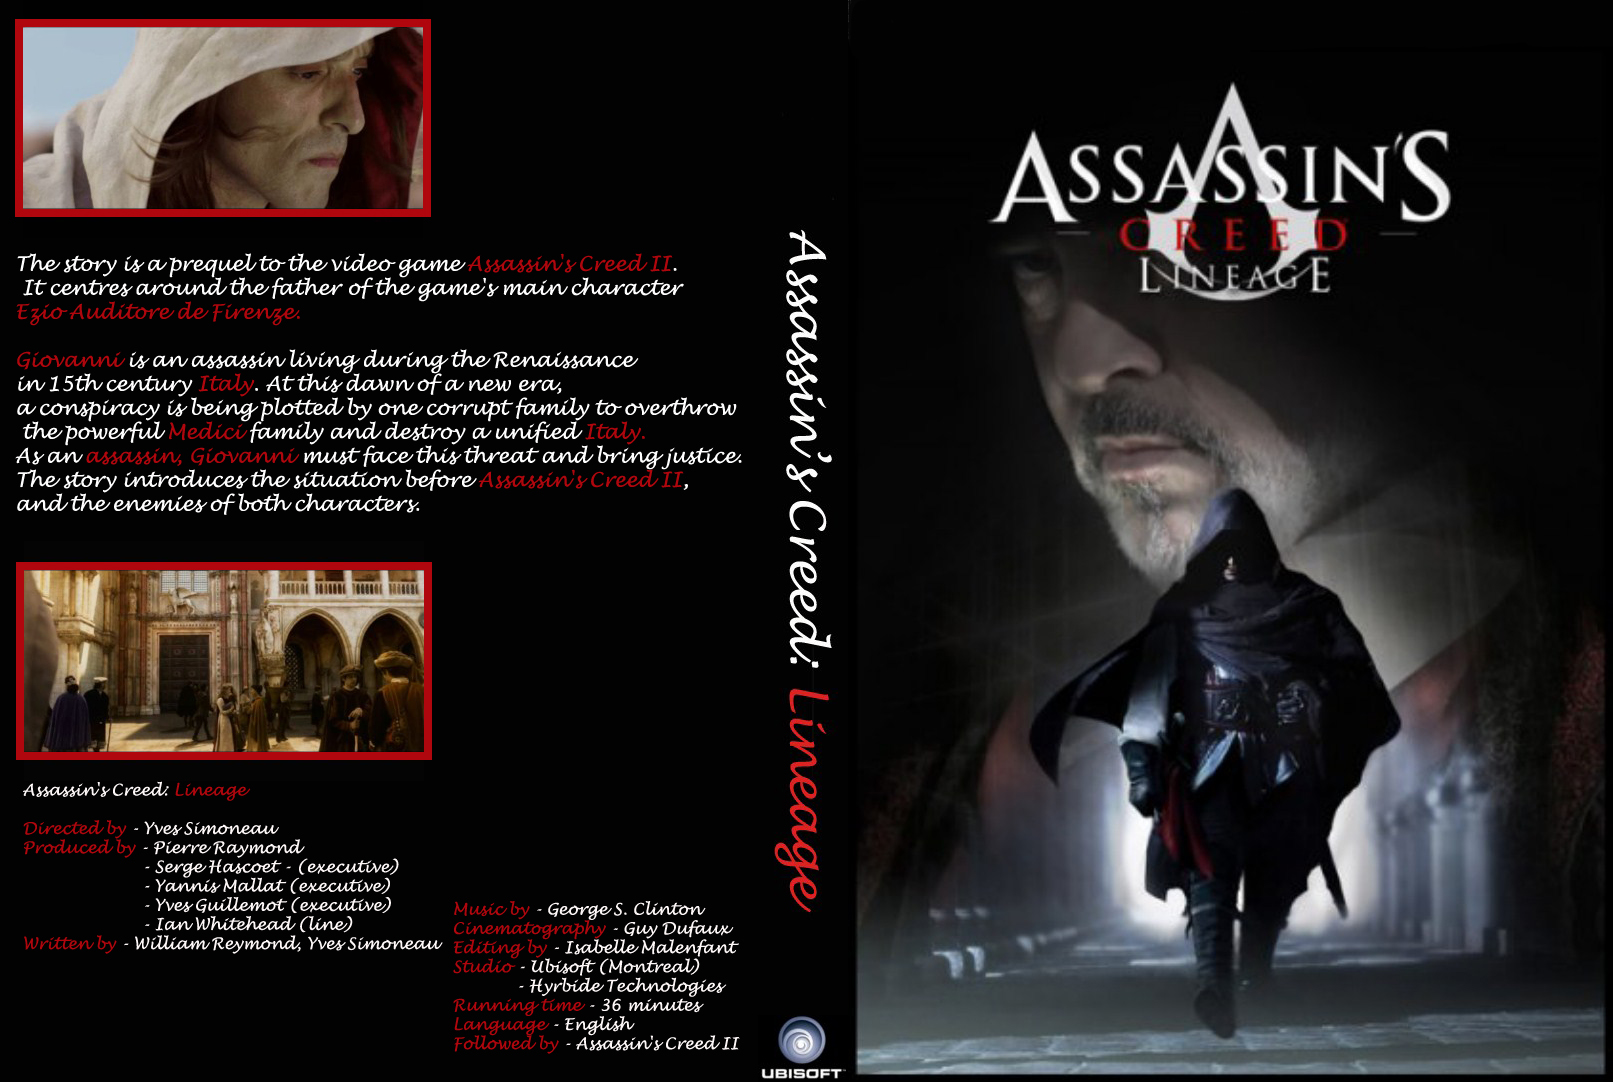 Assassins Creed Lineage DVDRip